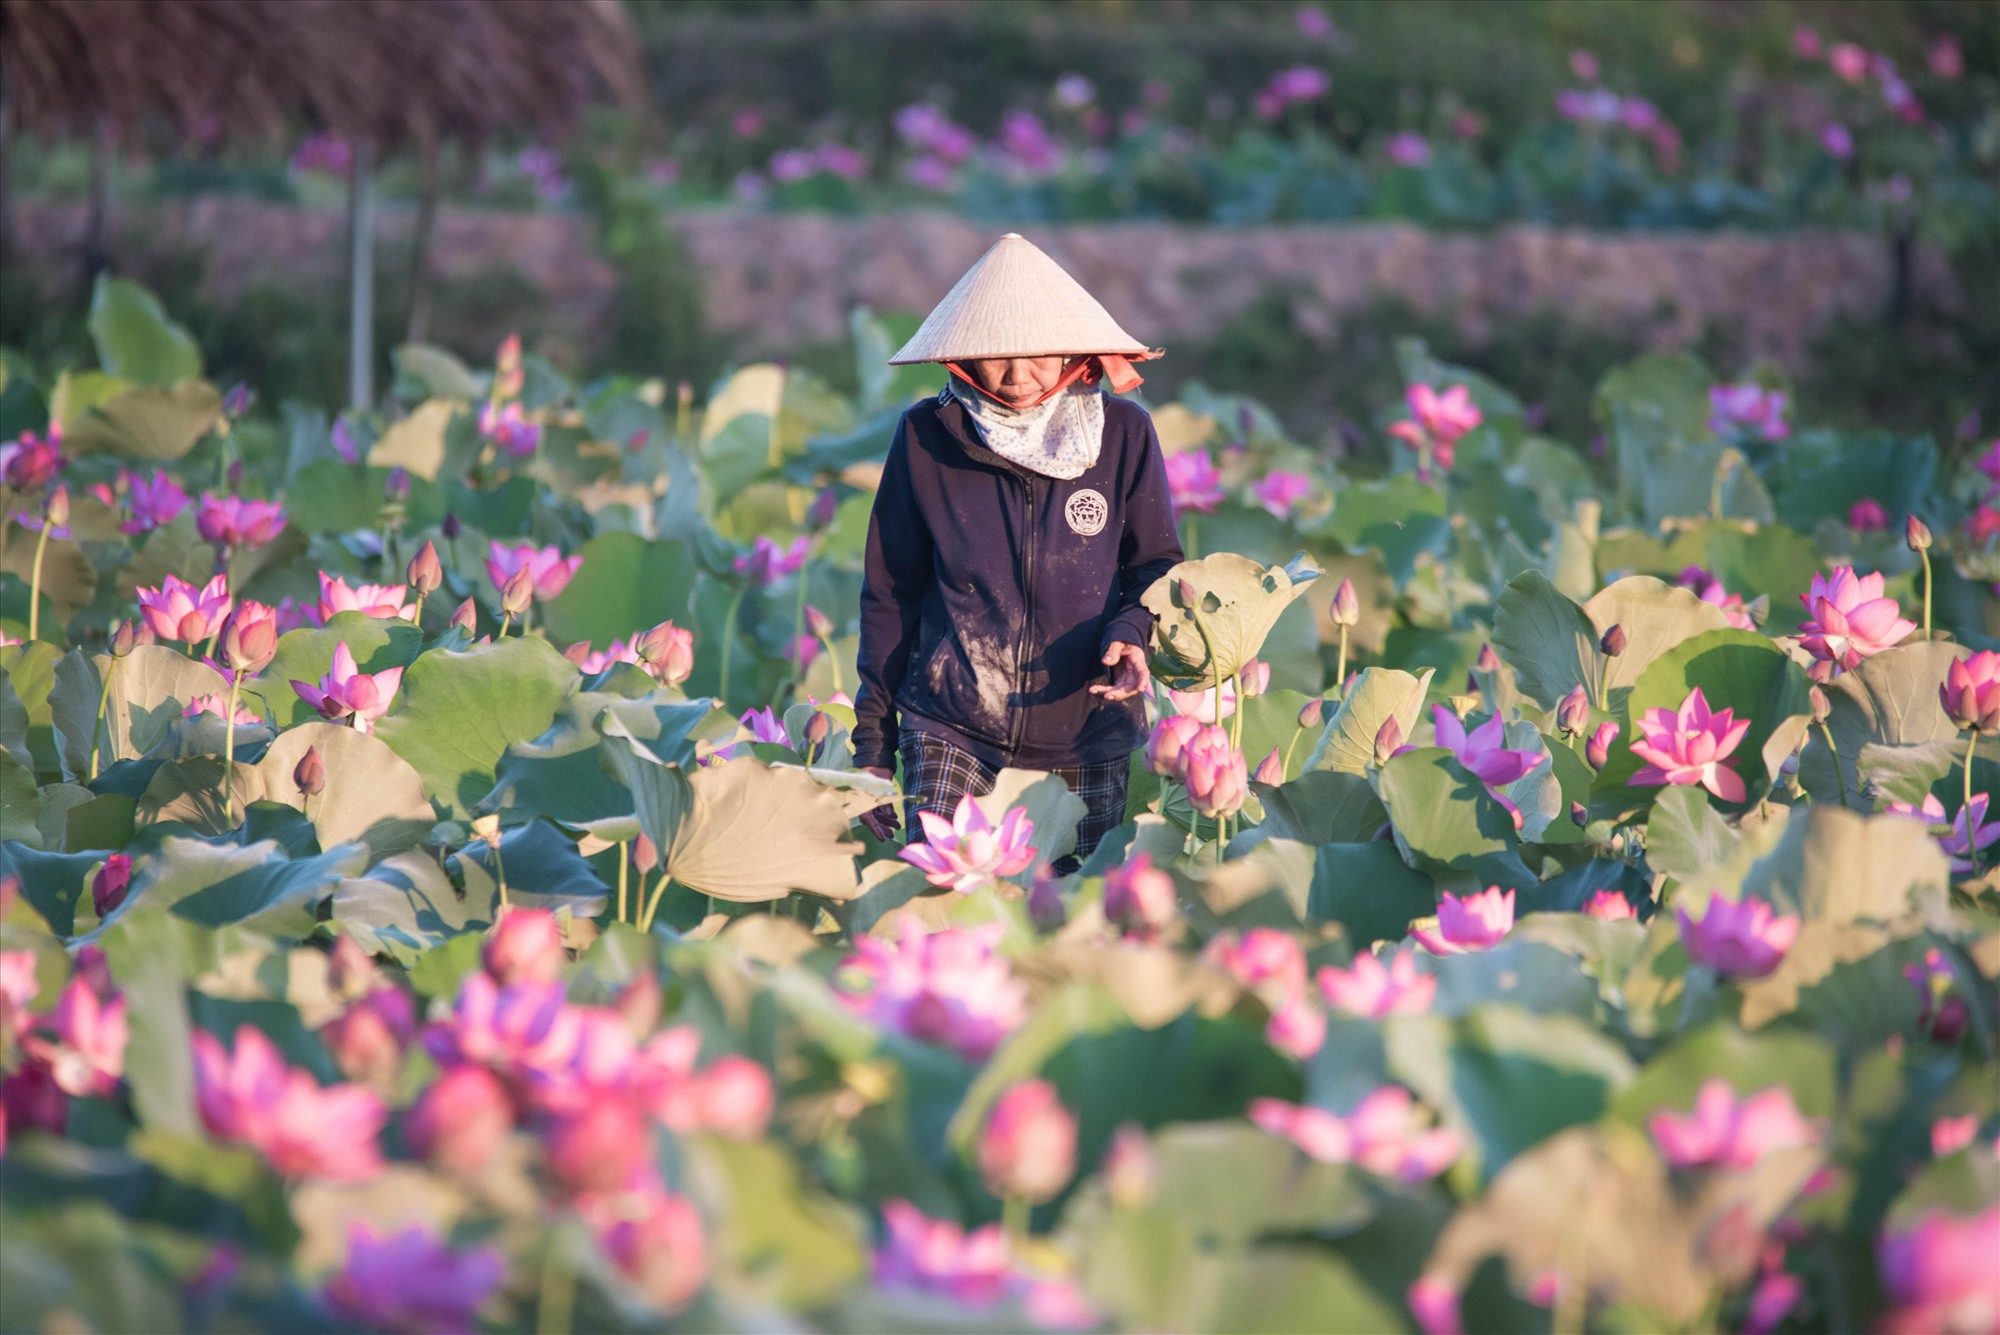 A farmer takes care of the lotus field.